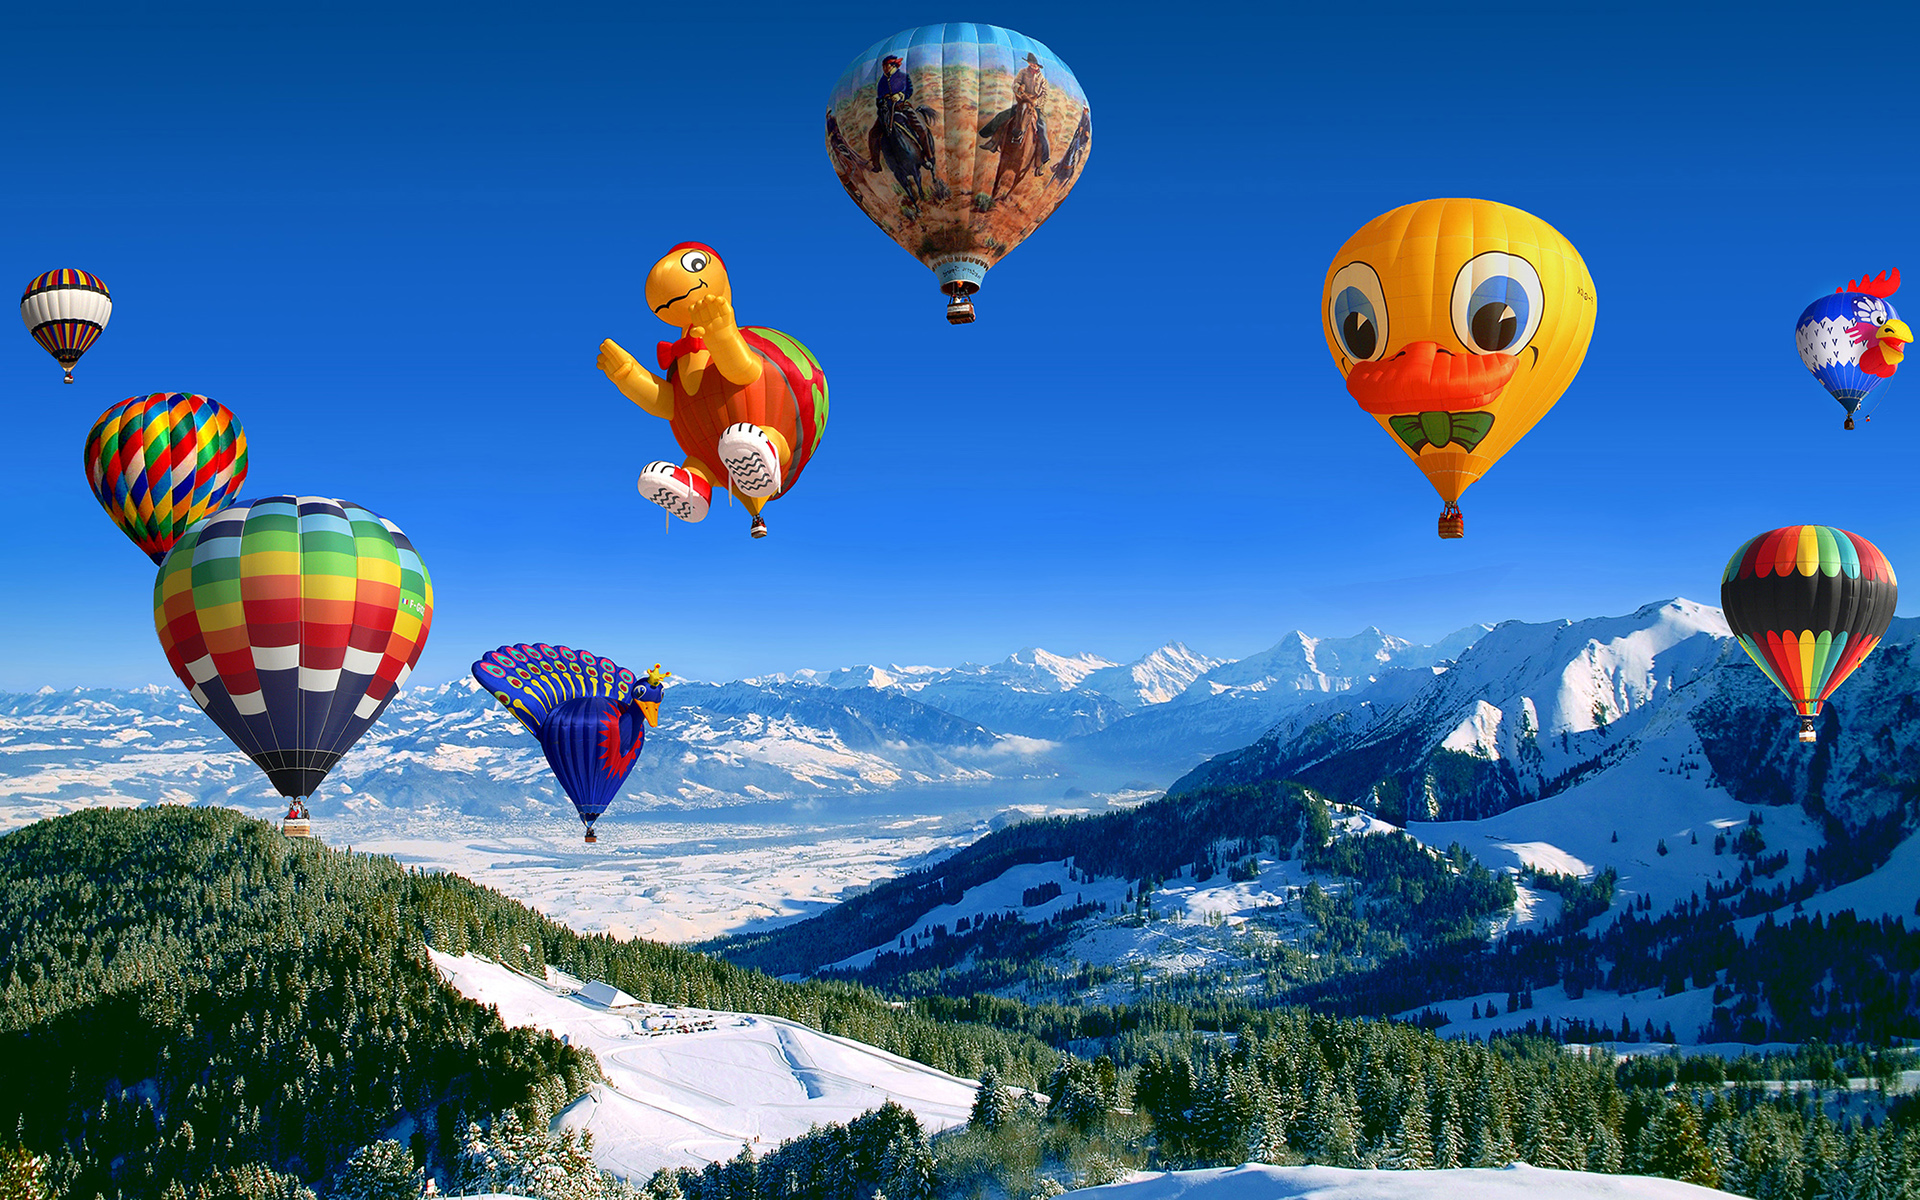 Awesome Hot Air Balloon High Definition Wallpapers All Hd Wallpapers